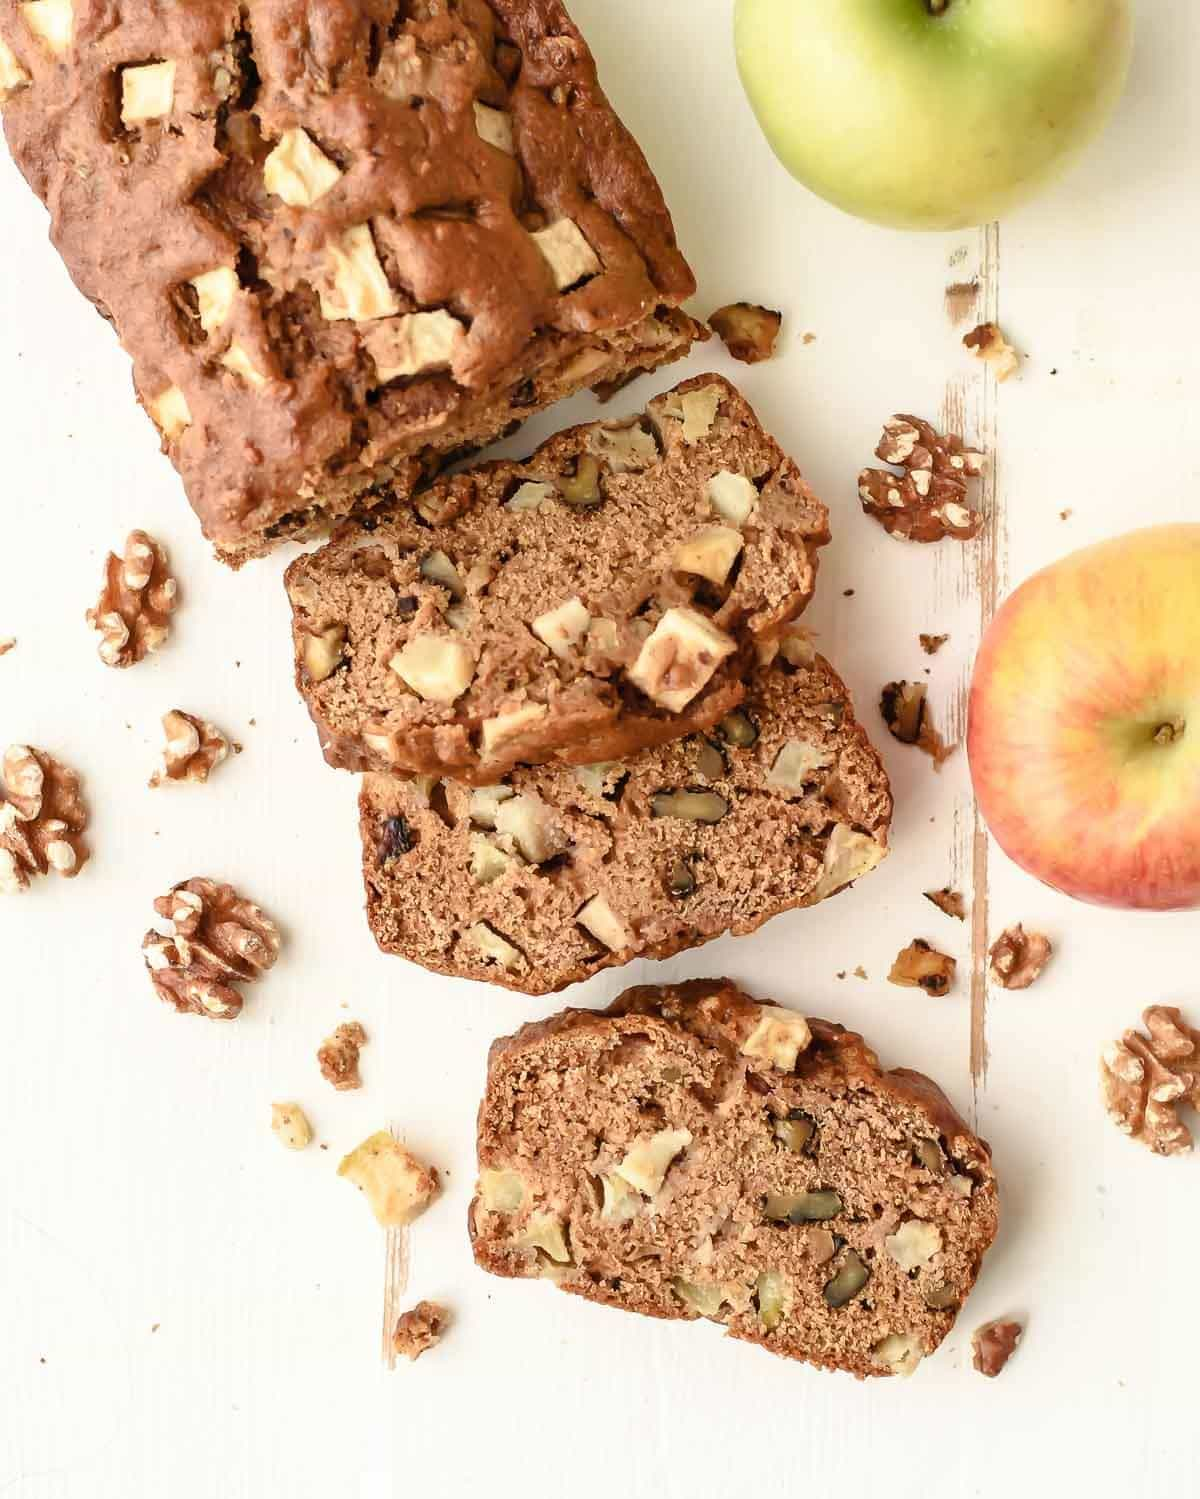 Best Ever Apple Bread - Made with applesauce and PACKED with cinnamon, fresh apples, and walnuts. Healthy, super moist, loaded with flavor, fast and easy!! @wellplated